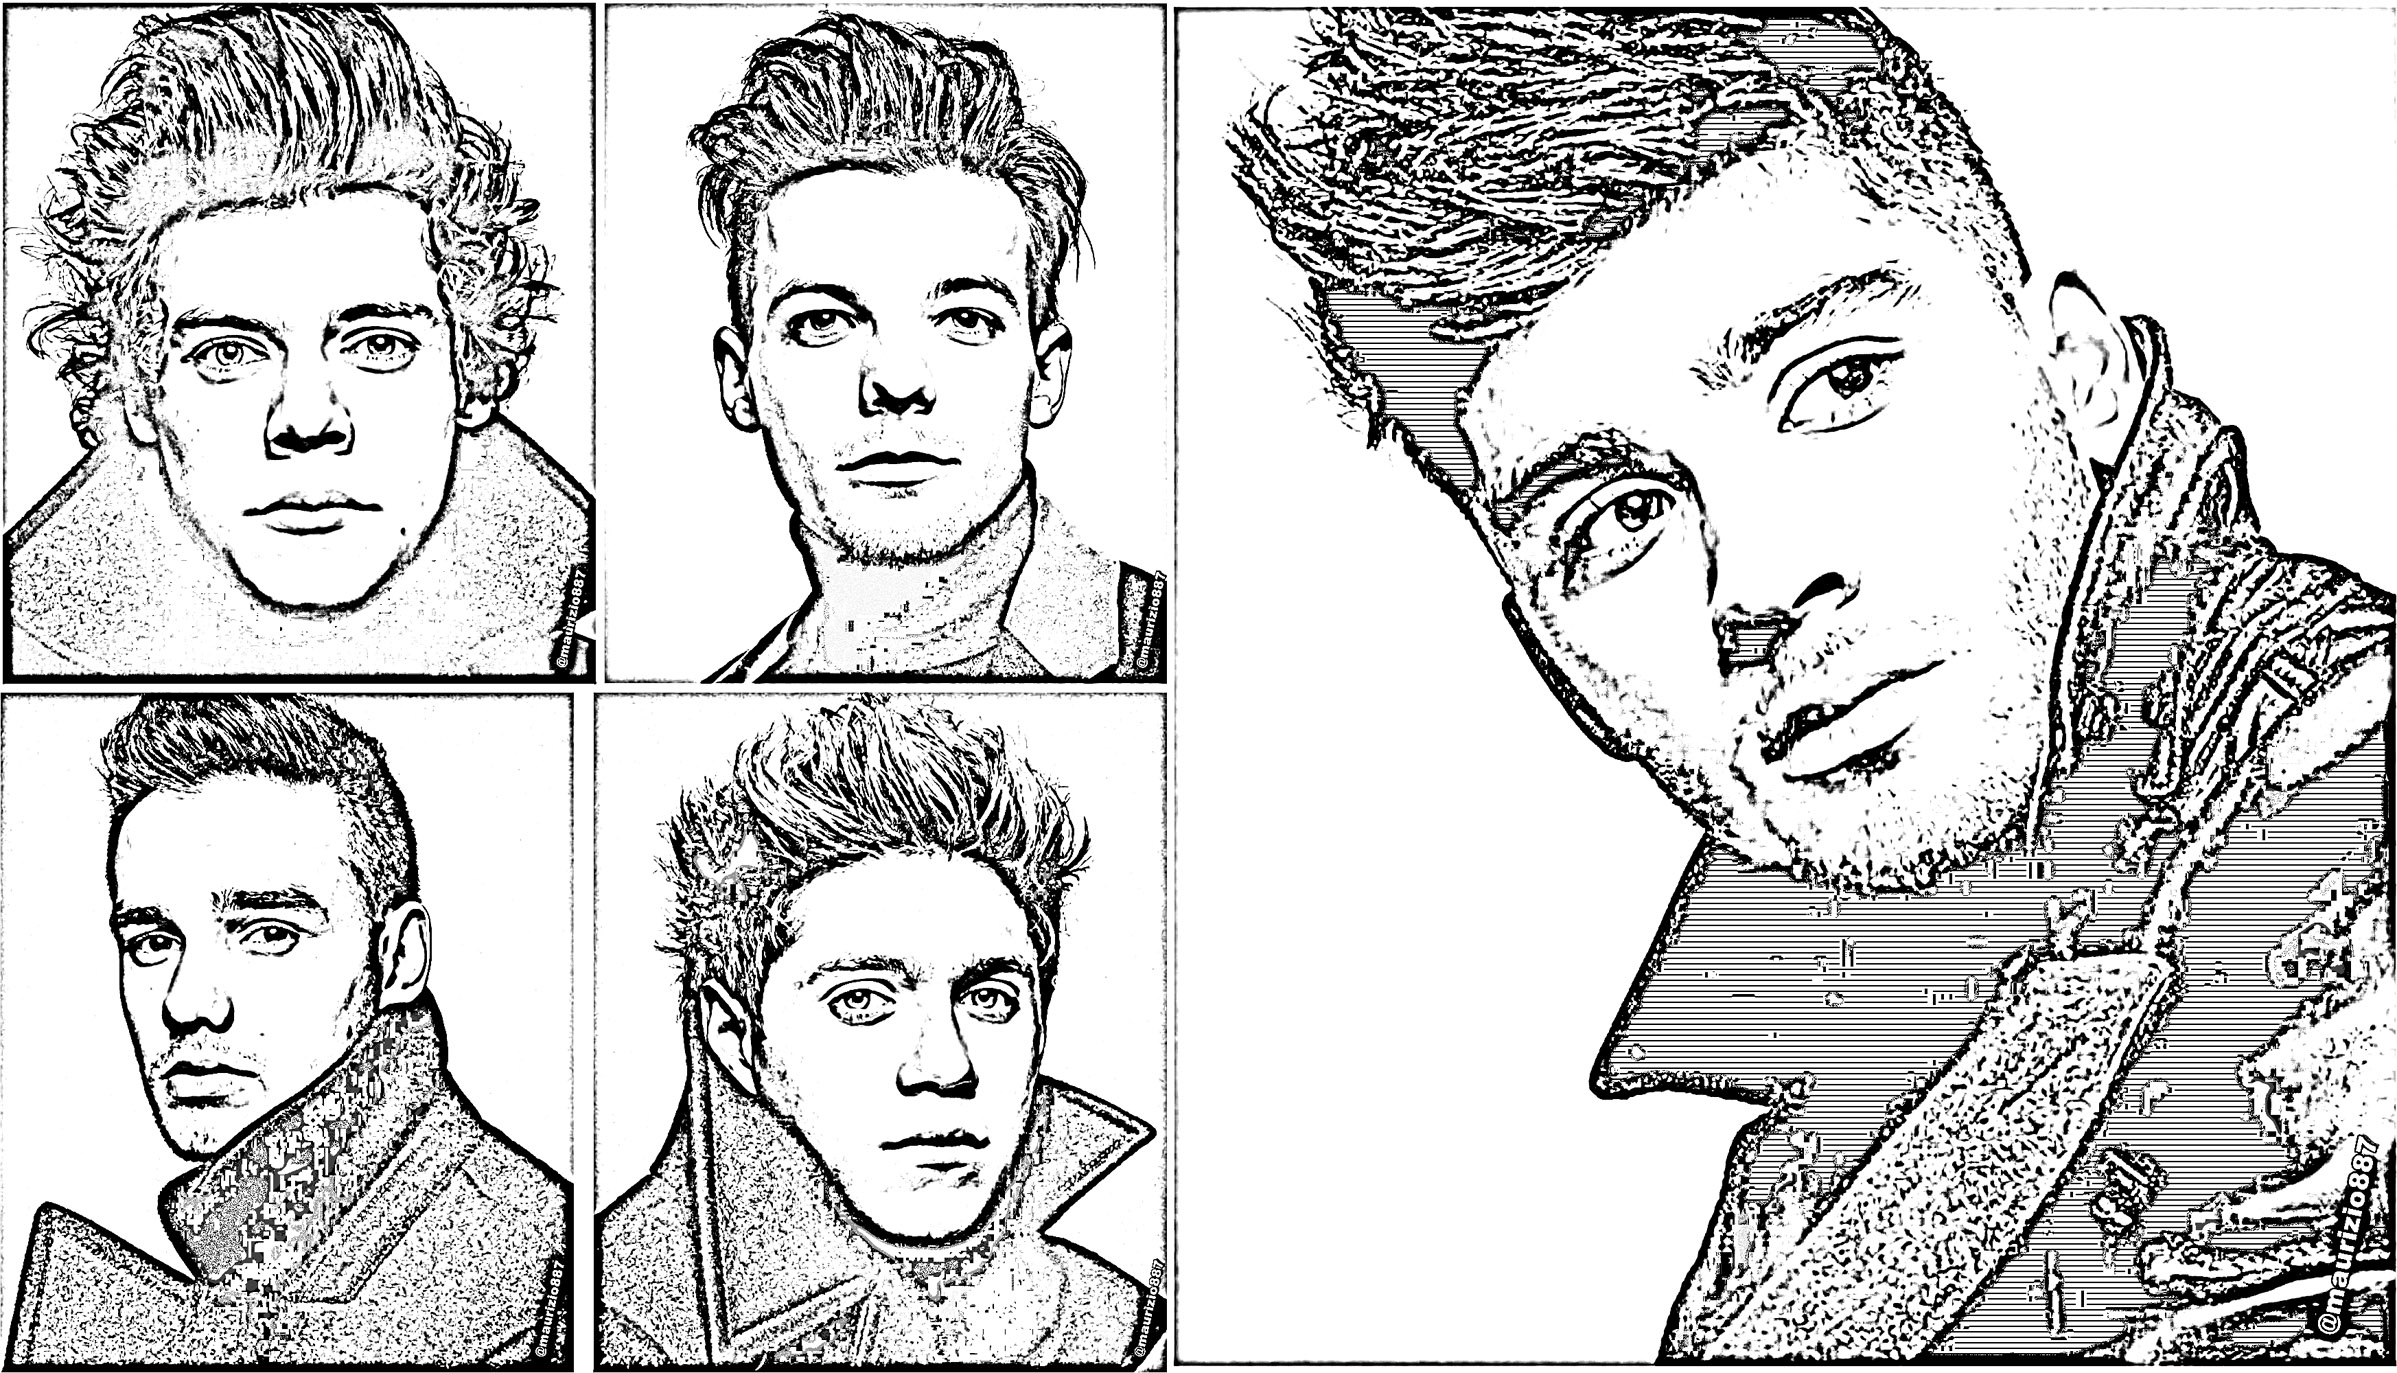 one direction coloring pages cartoon animals | One direction free to color for kids - One Direction Kids ...